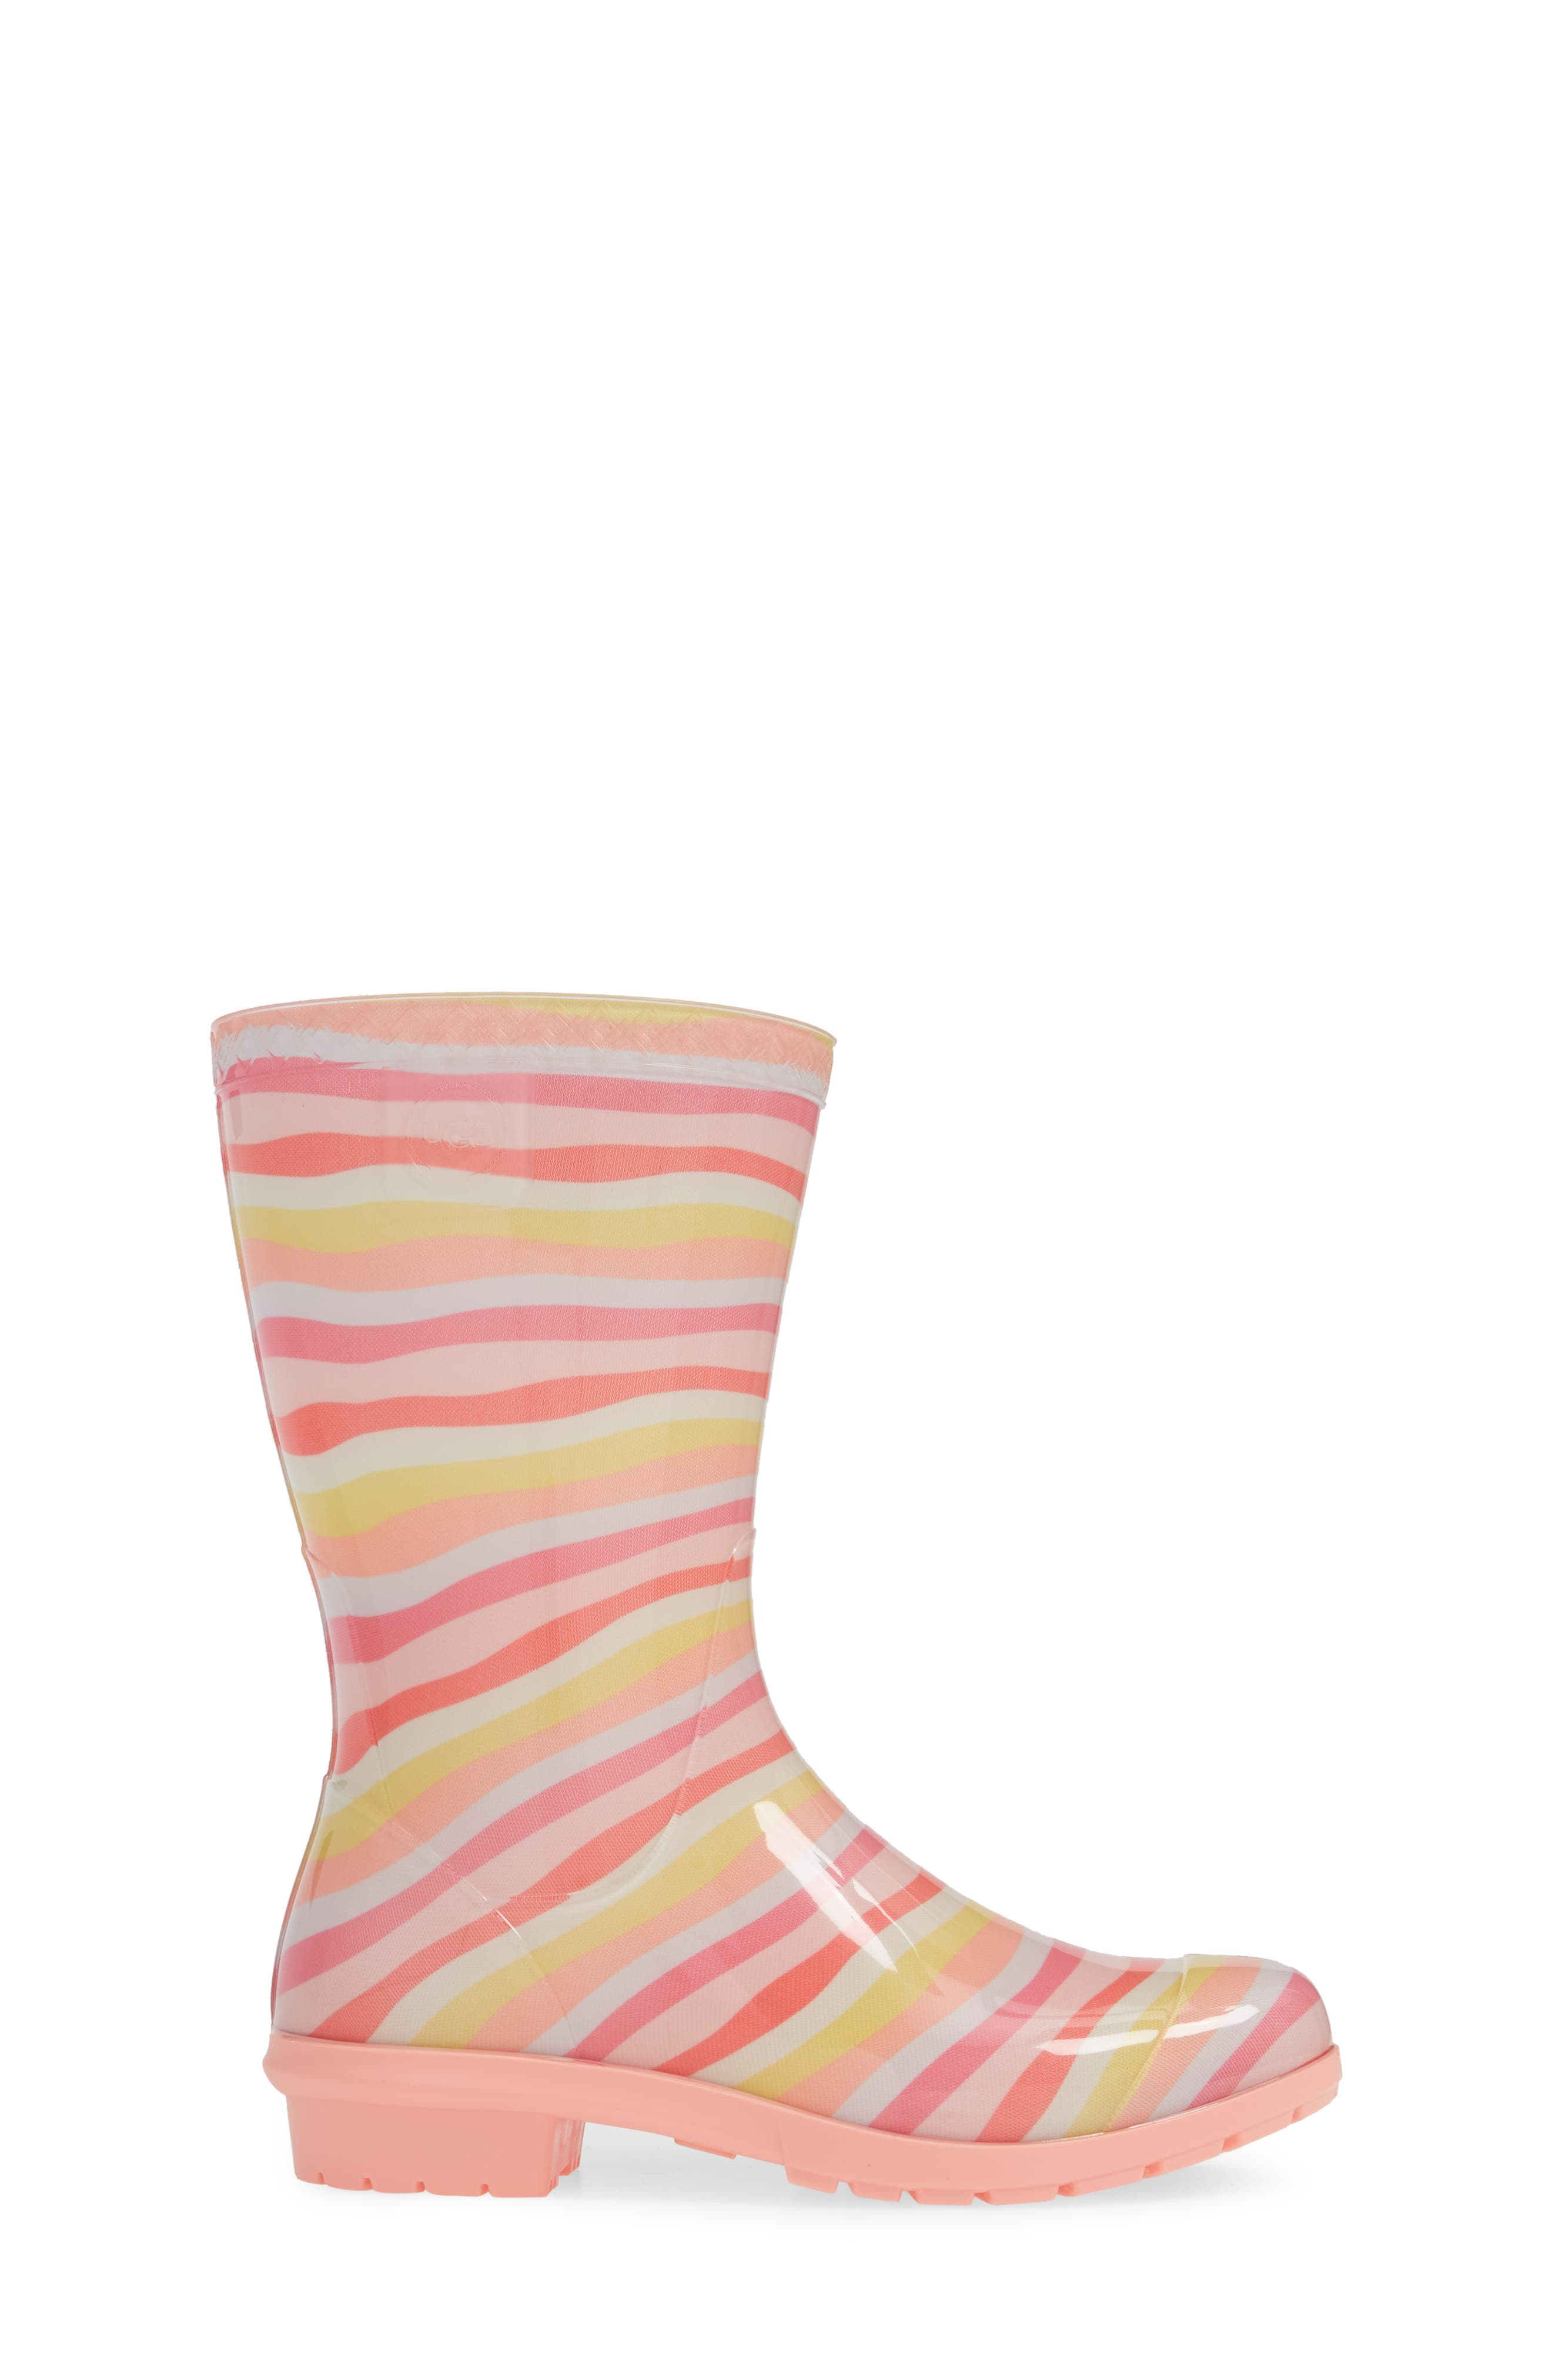 UGG<SUP>®</SUP>, Raana Waterproof Rain Boot, Alternate thumbnail 3, color, RAINBOW